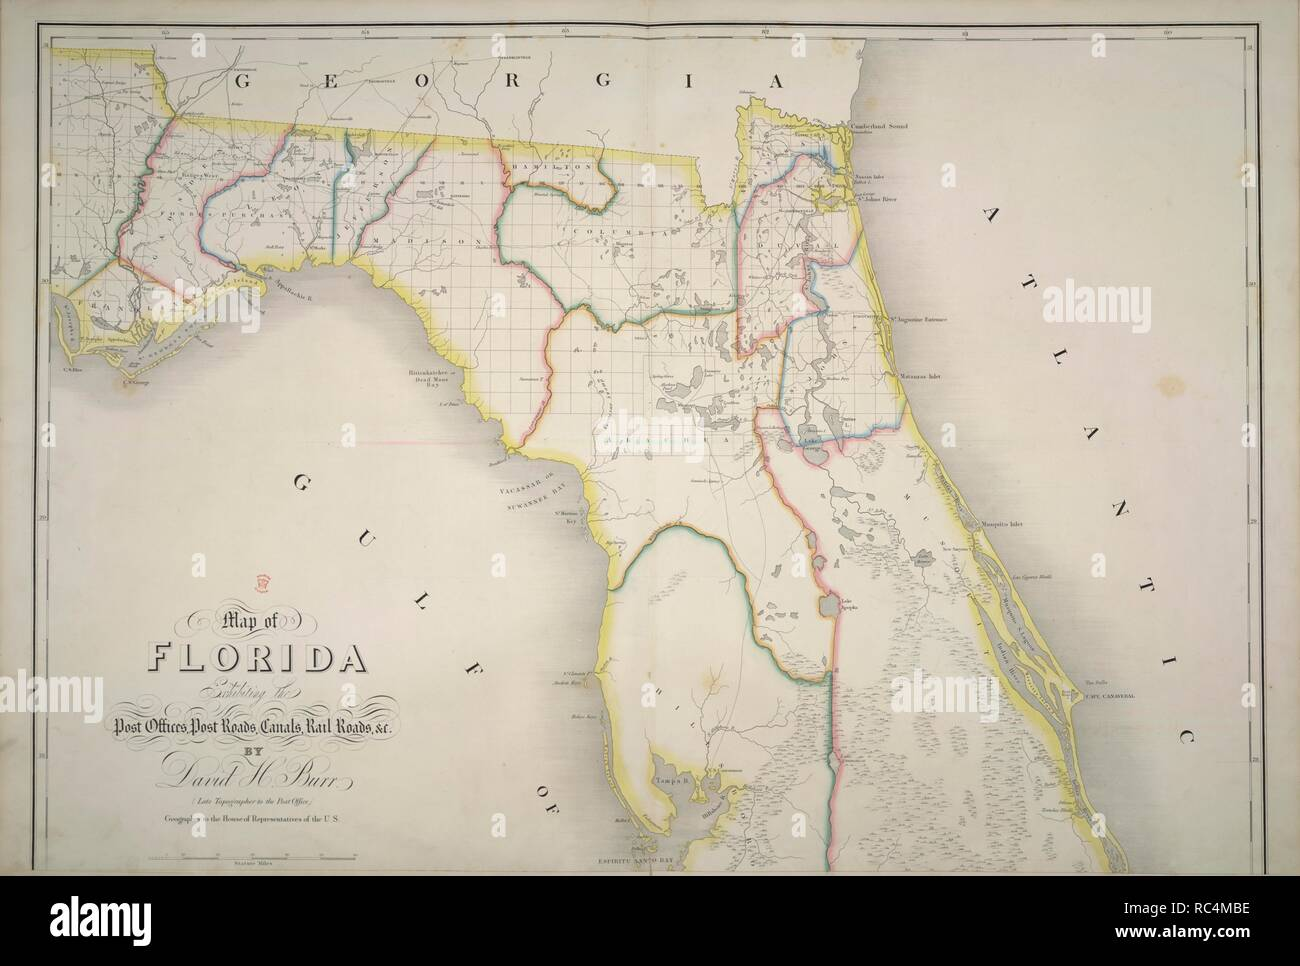 15 July 1839 Stock Photos & 15 July 1839 Stock Images - Alamy Y Atlan United States Map on canada map, florida map, europe map, caribbean map, nevada map, mexico map, africa map, 13 colonies map, tennessee map, us state map, the us map, texas map, full size us map, the world map, great lakes map, arkansas map, missouri map, east coast map, blank map, mississippi map,